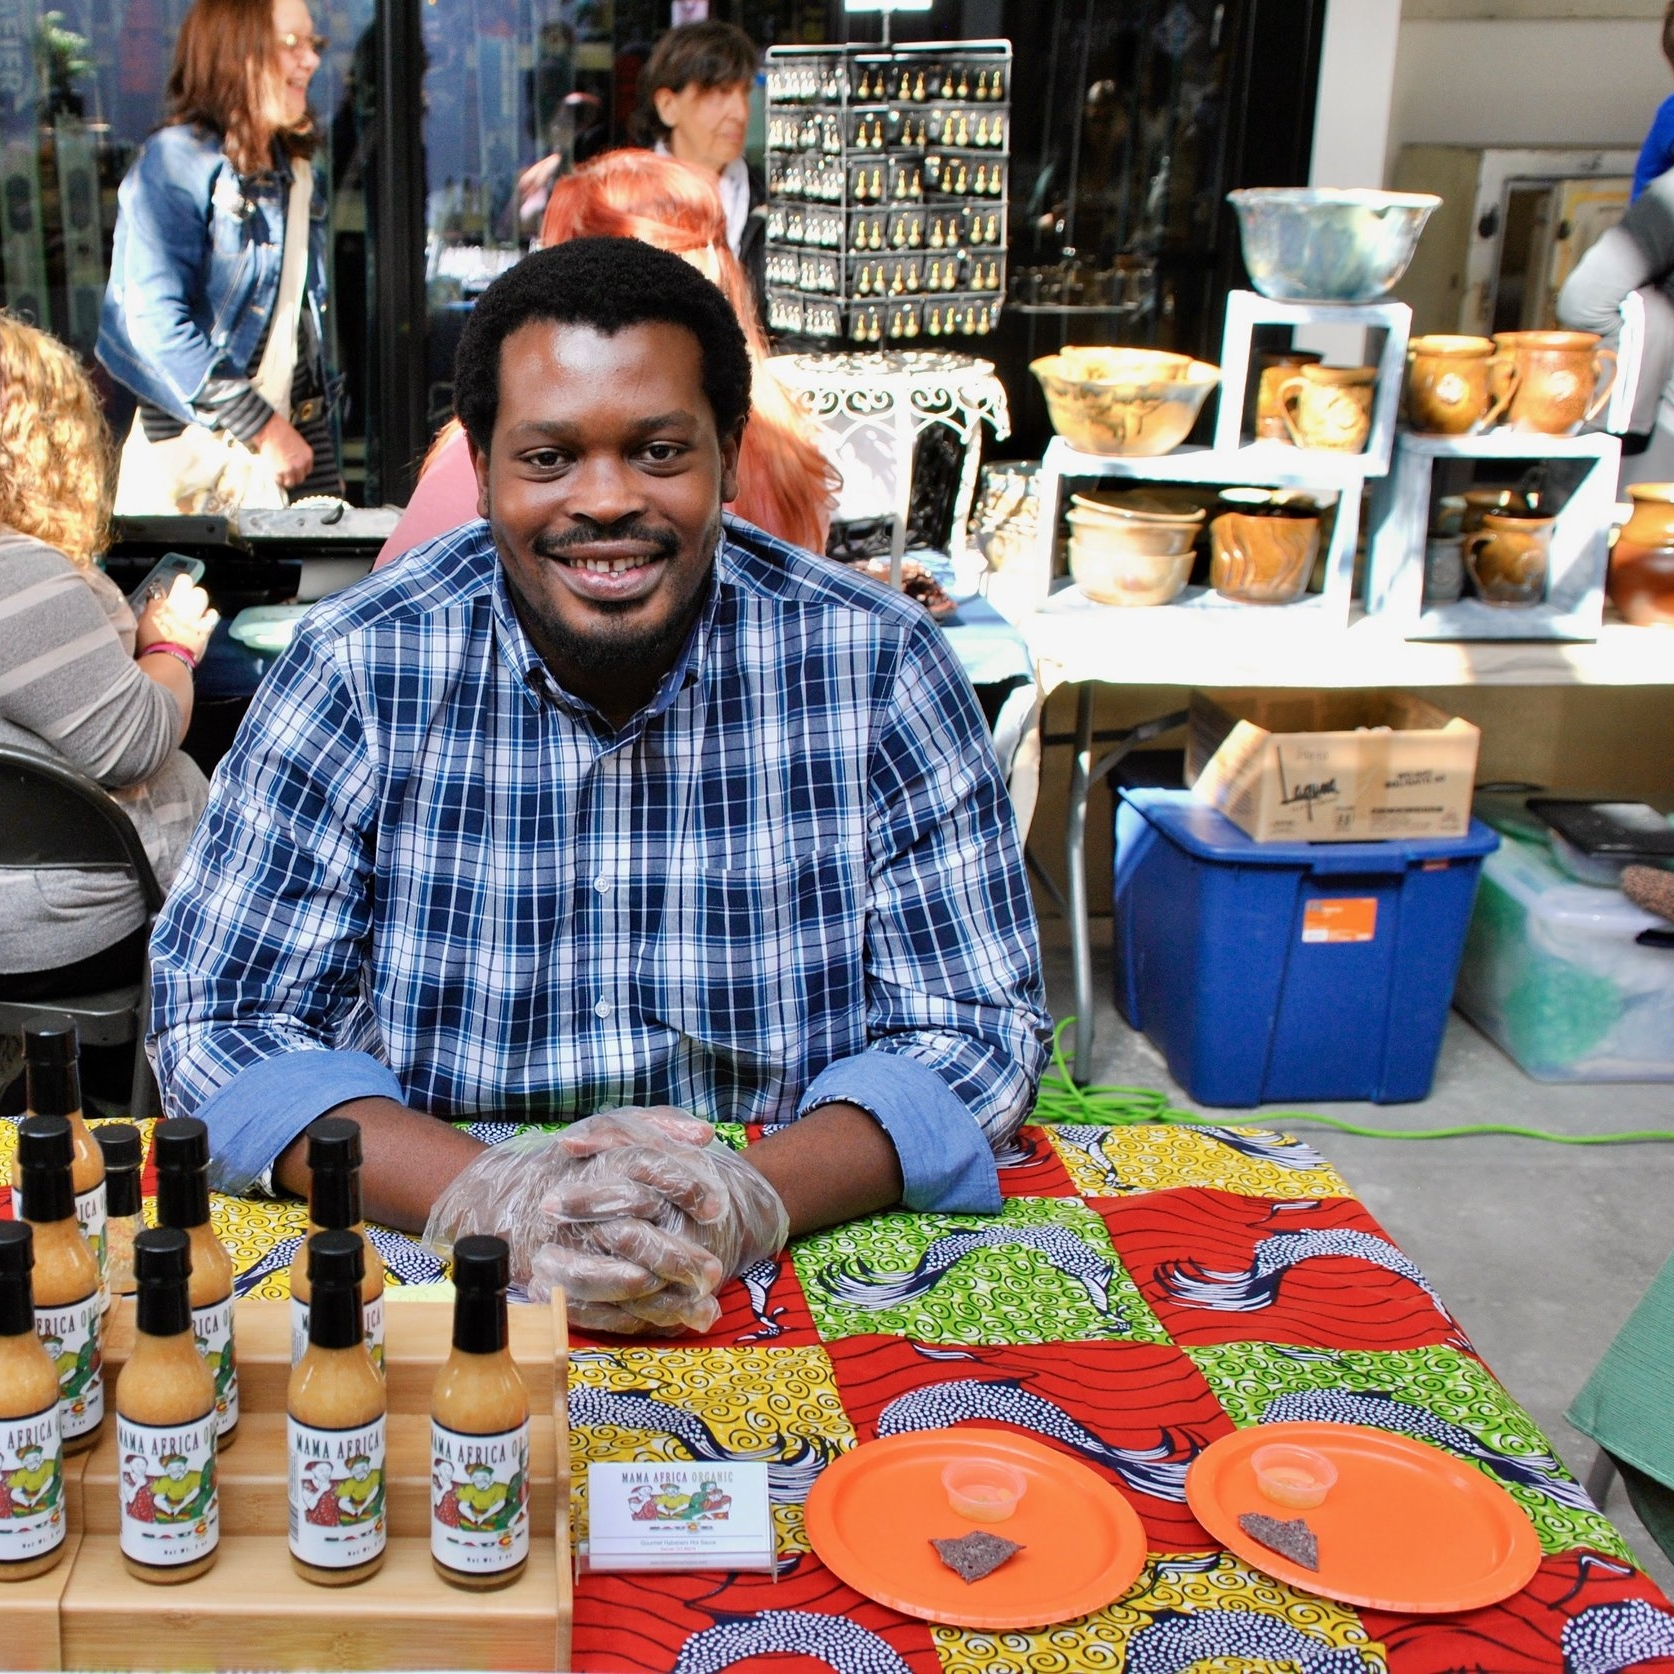 BE A VENDOR AT THE HAHO MARKET - OUR LOW-RISK MARKETS ARE PERFECT FOR FIRST-TIME SELLERS AND THOSE NEEDING A CASUAL AND POPULAR VENUE TO SELL THEIR GOODS